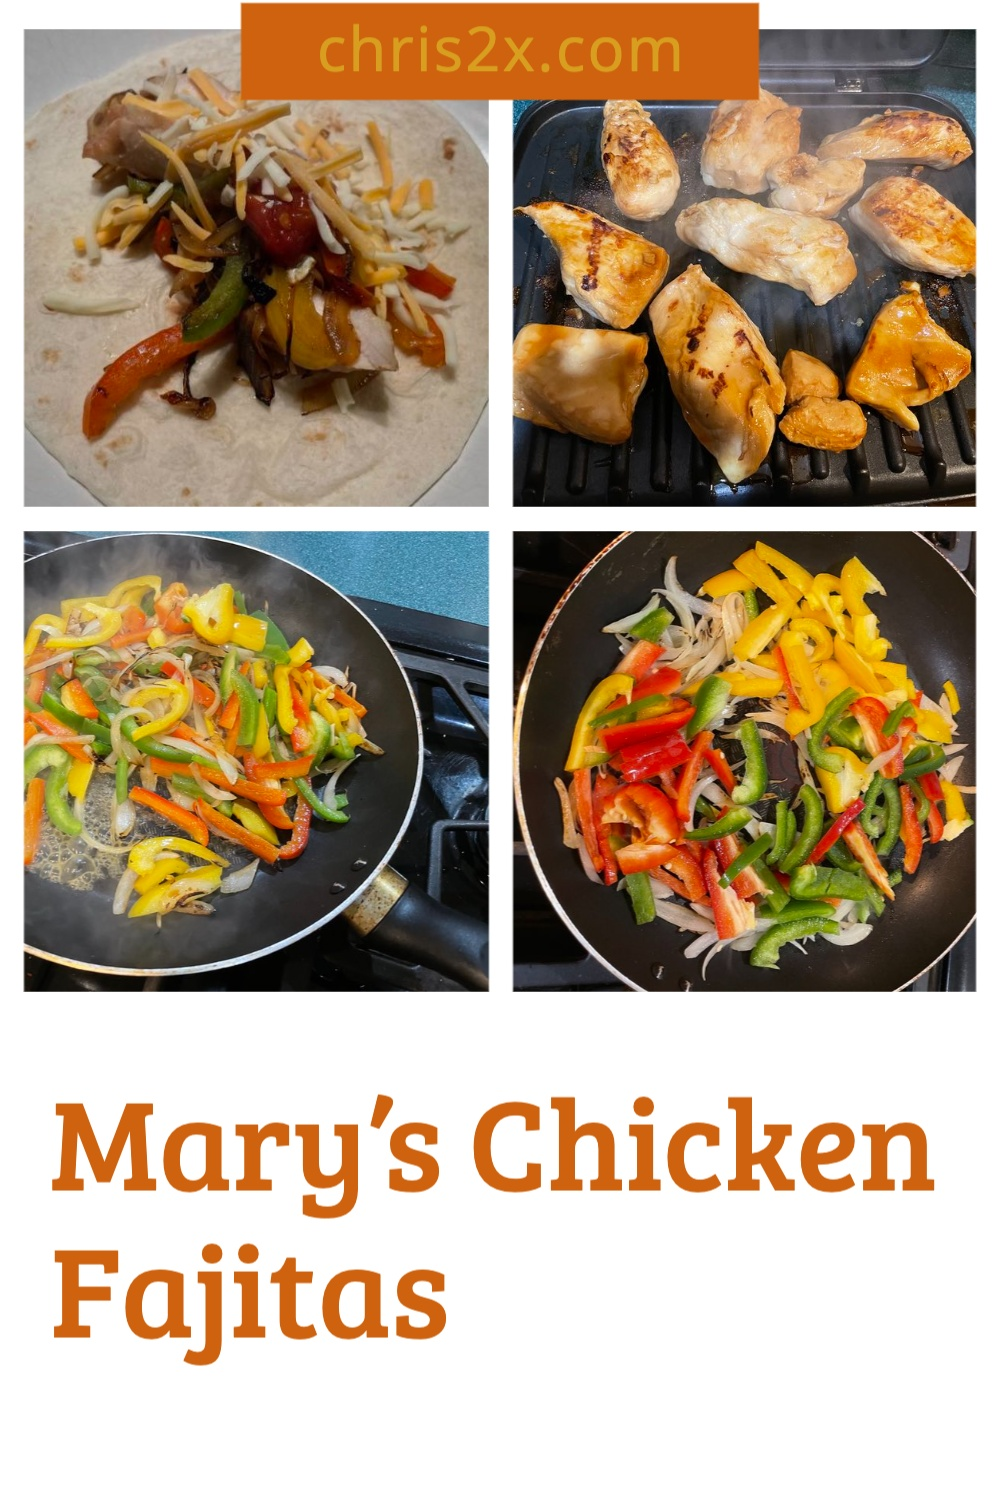 Mary's Chicken Fajitas Recipe | Tex-Mex #recipe #chicken #fajitas #tex-mex #mexican #main-course